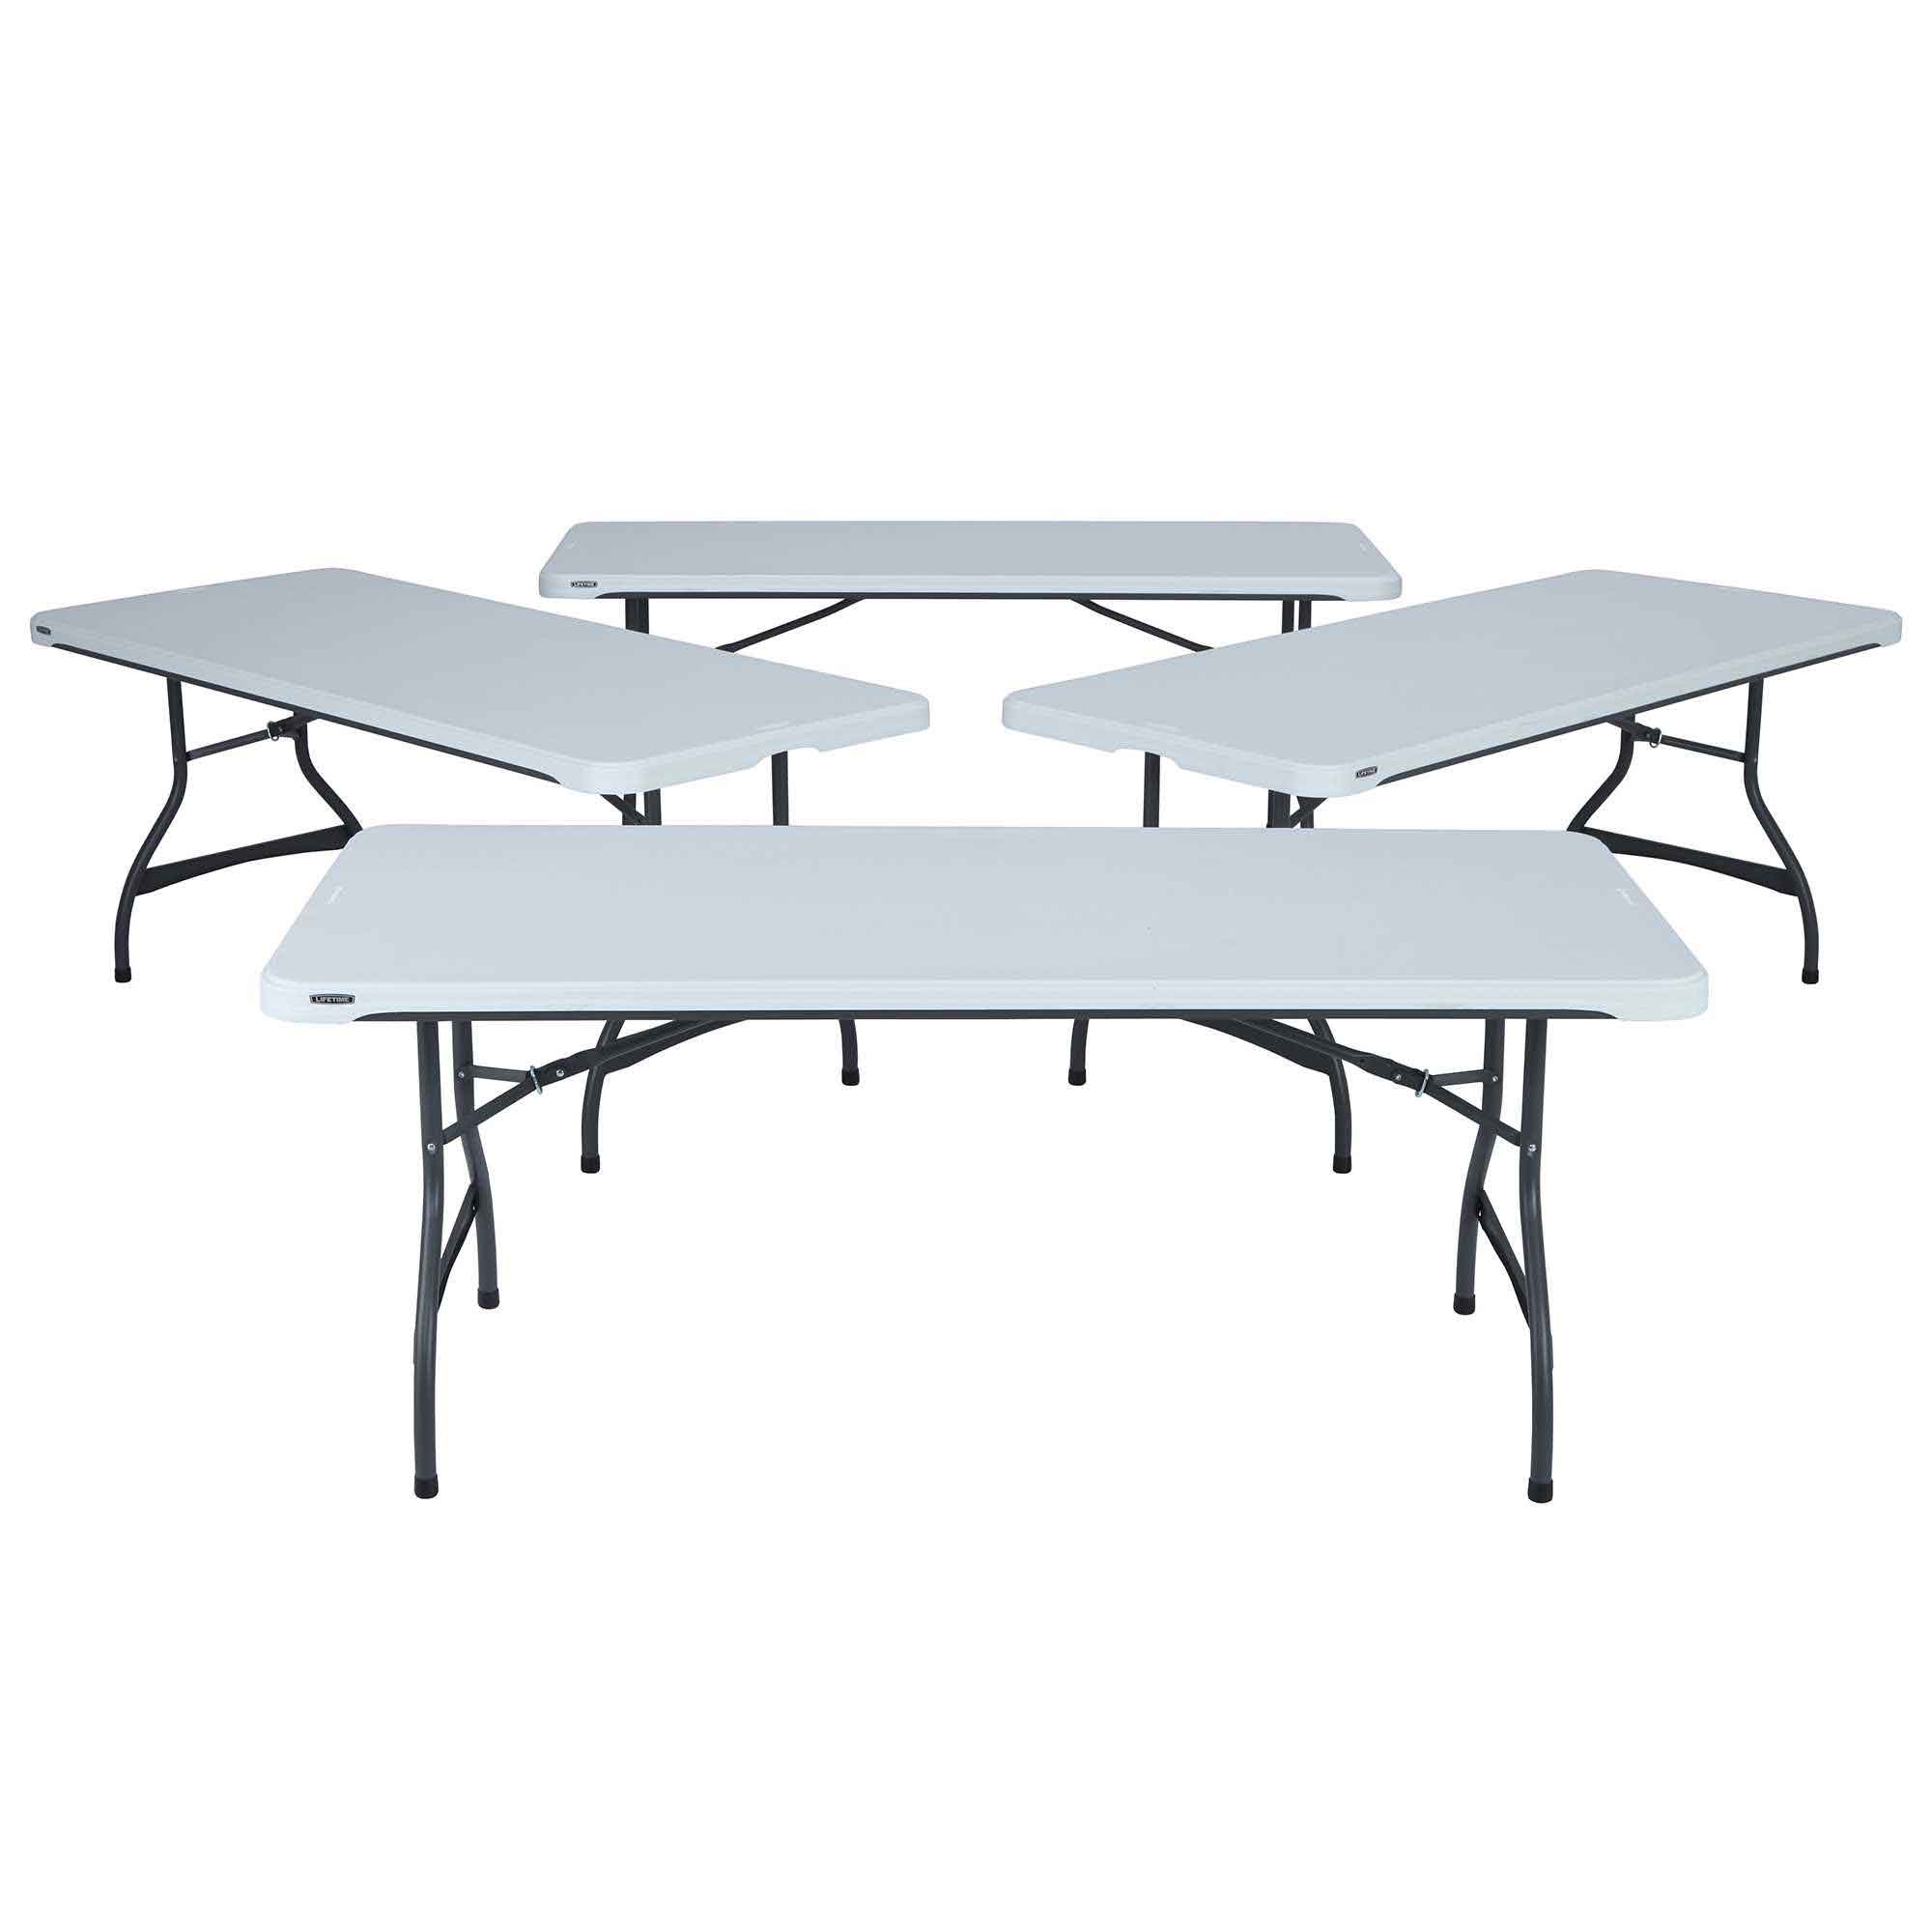 lifetime chairs and tables sofas 480272 nesting folding table 6 39 on sale with